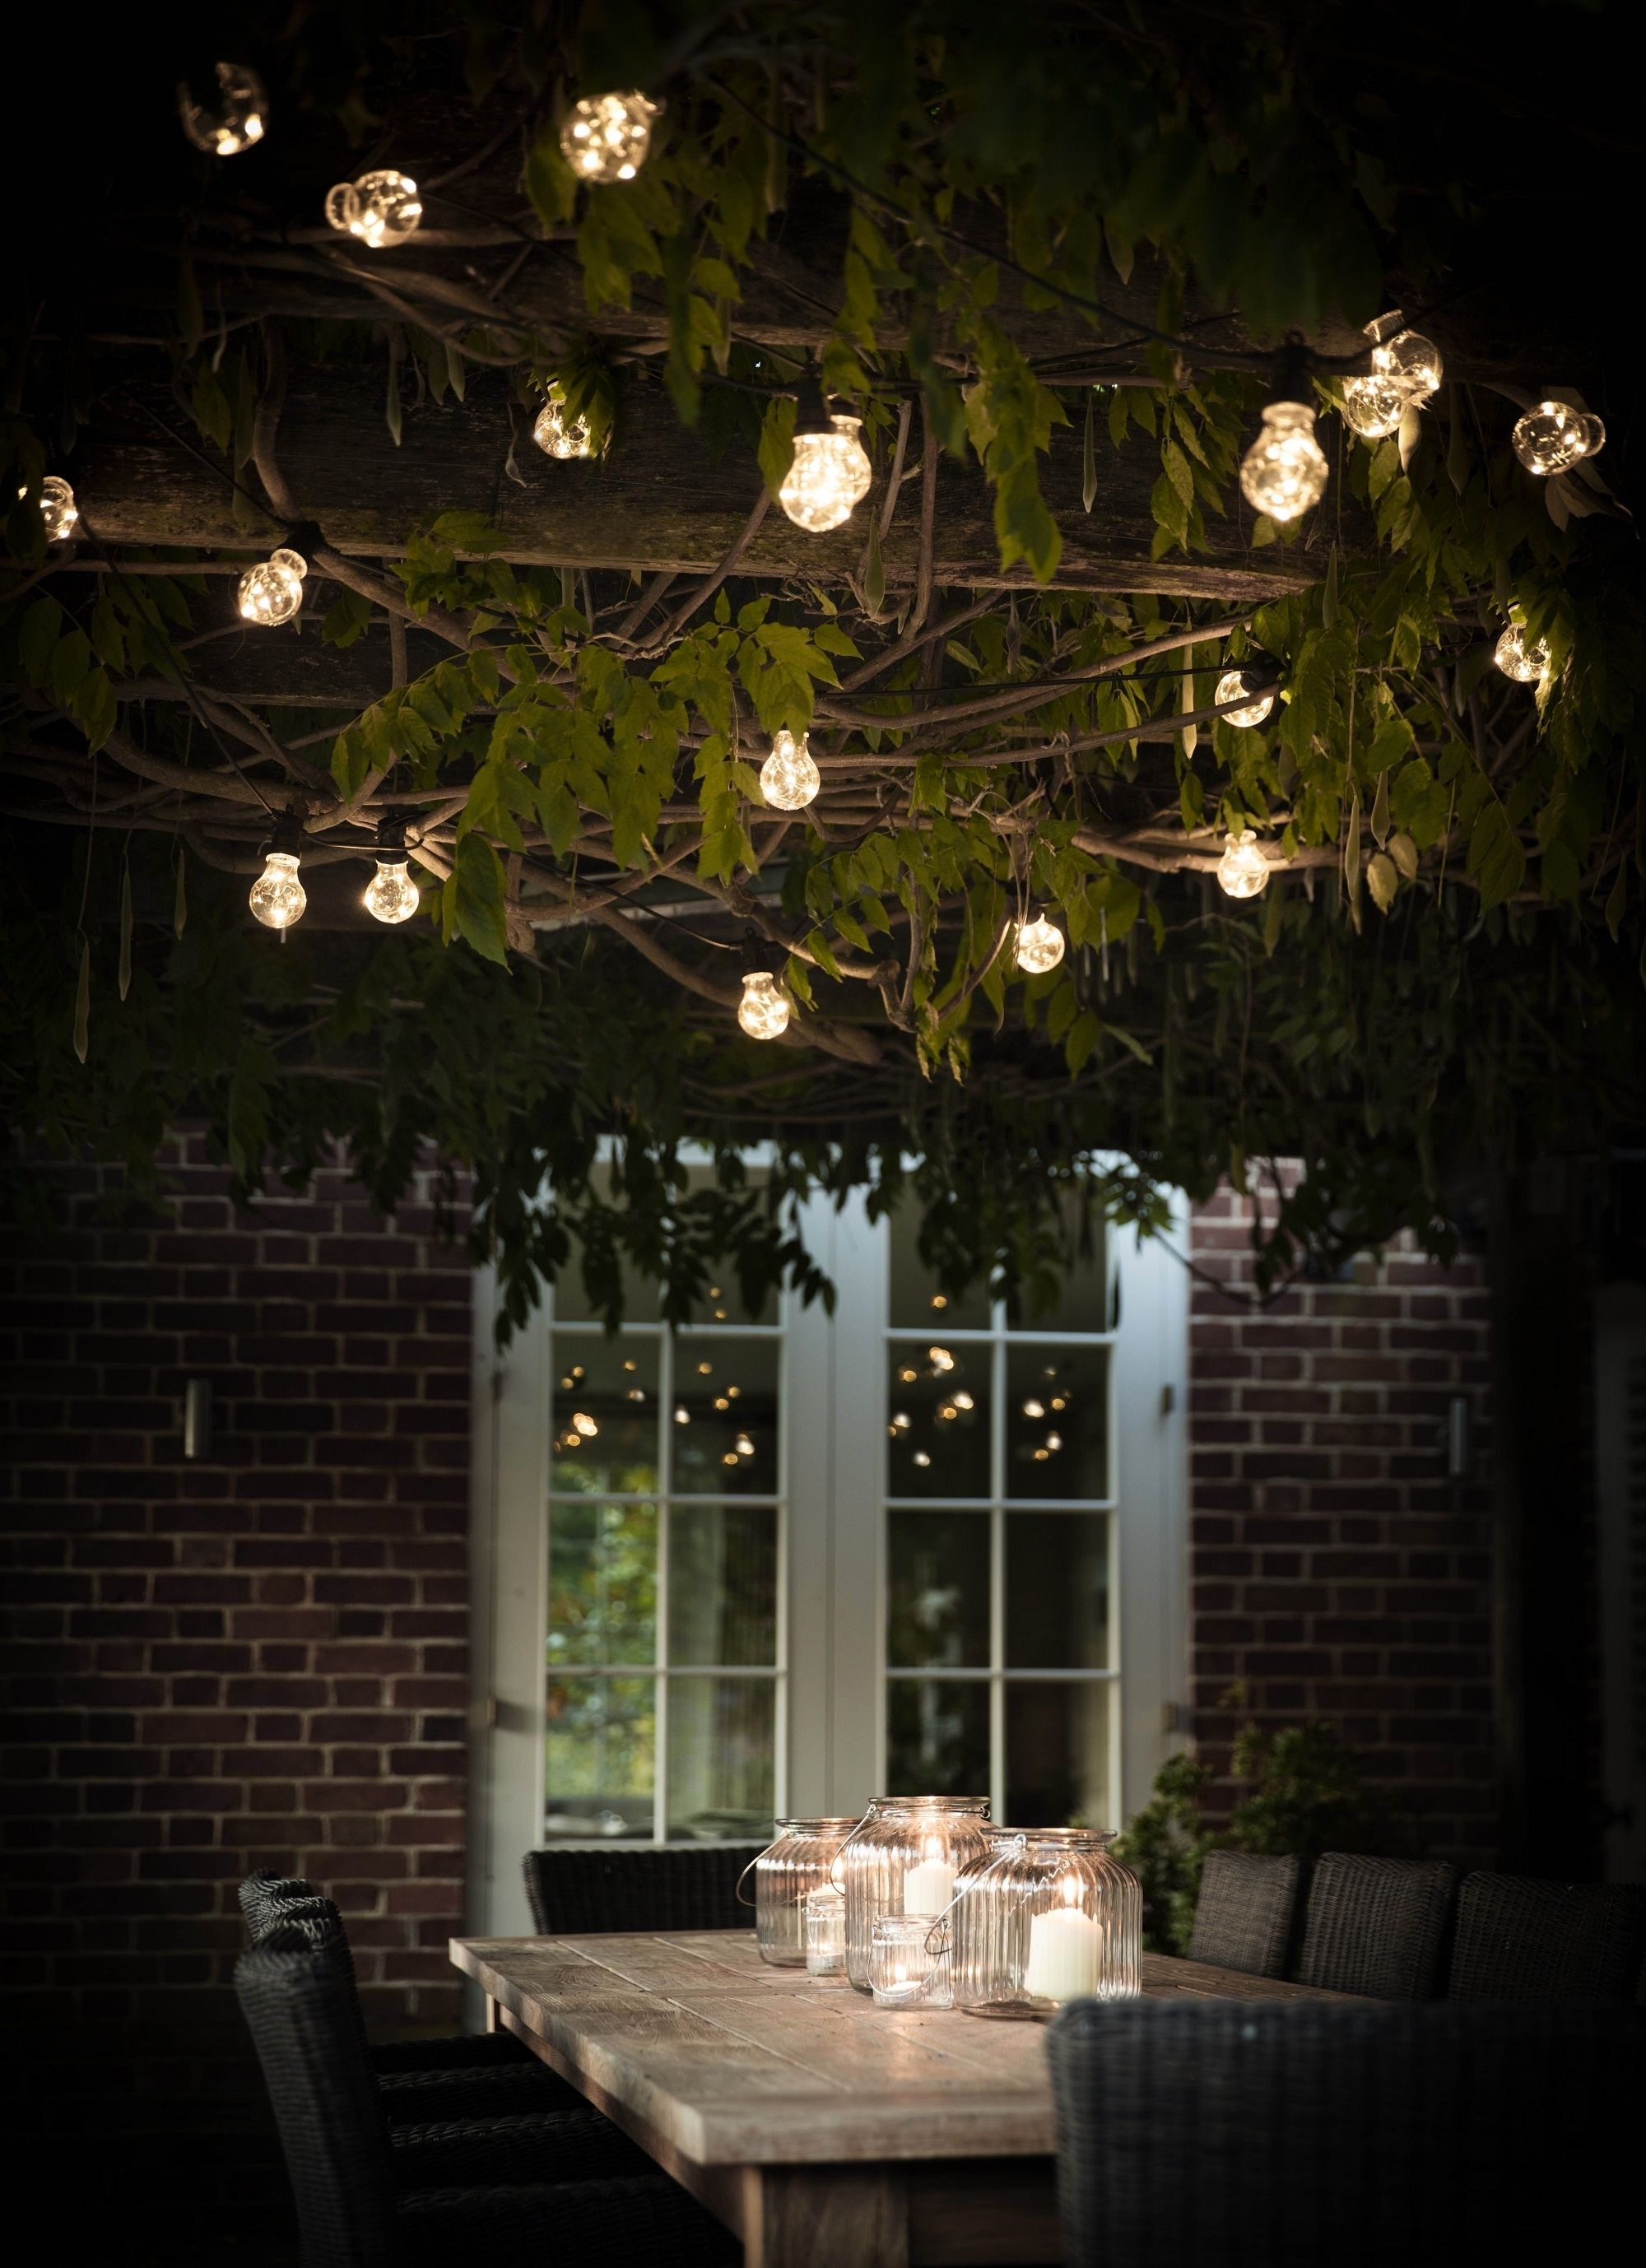 Outdoor Lanterns For Trees Within Well Liked 38 Innovative Outdoor Lighting Ideas For Your Garden (View 10 of 20)